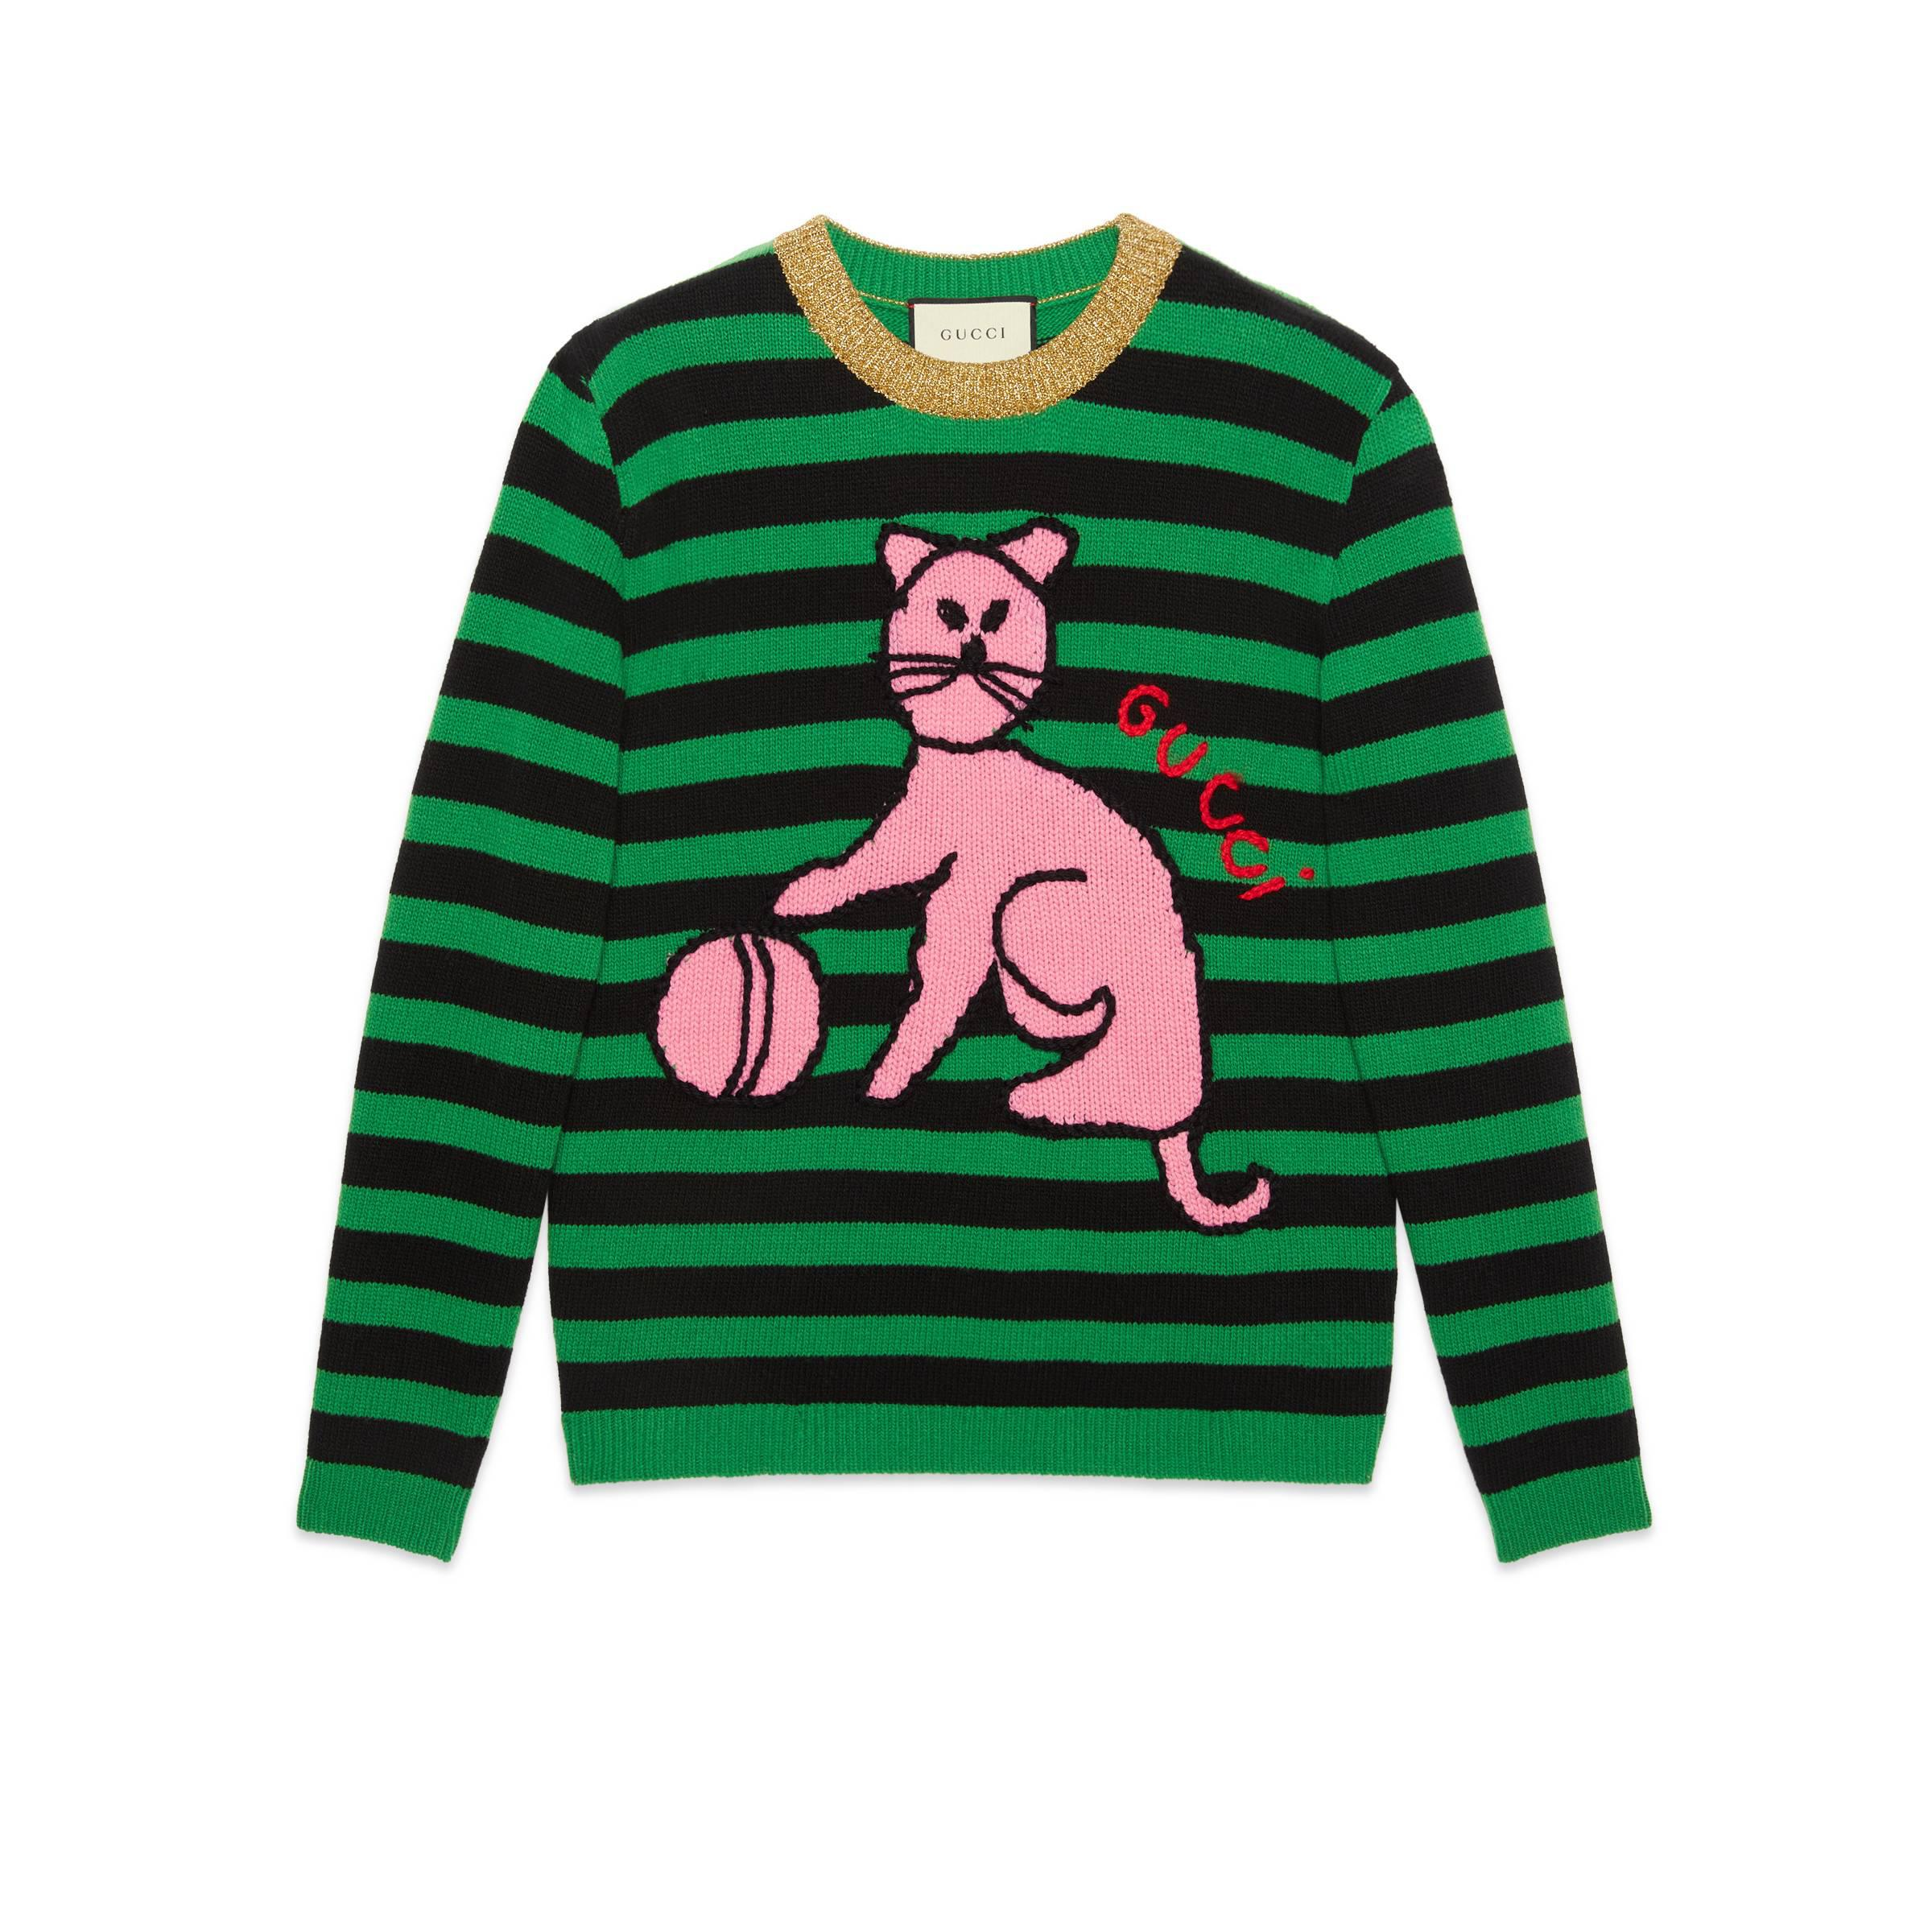 bbafbcf6692 Gucci - Green Sweater With Cat And Baseball - Lyst. View fullscreen